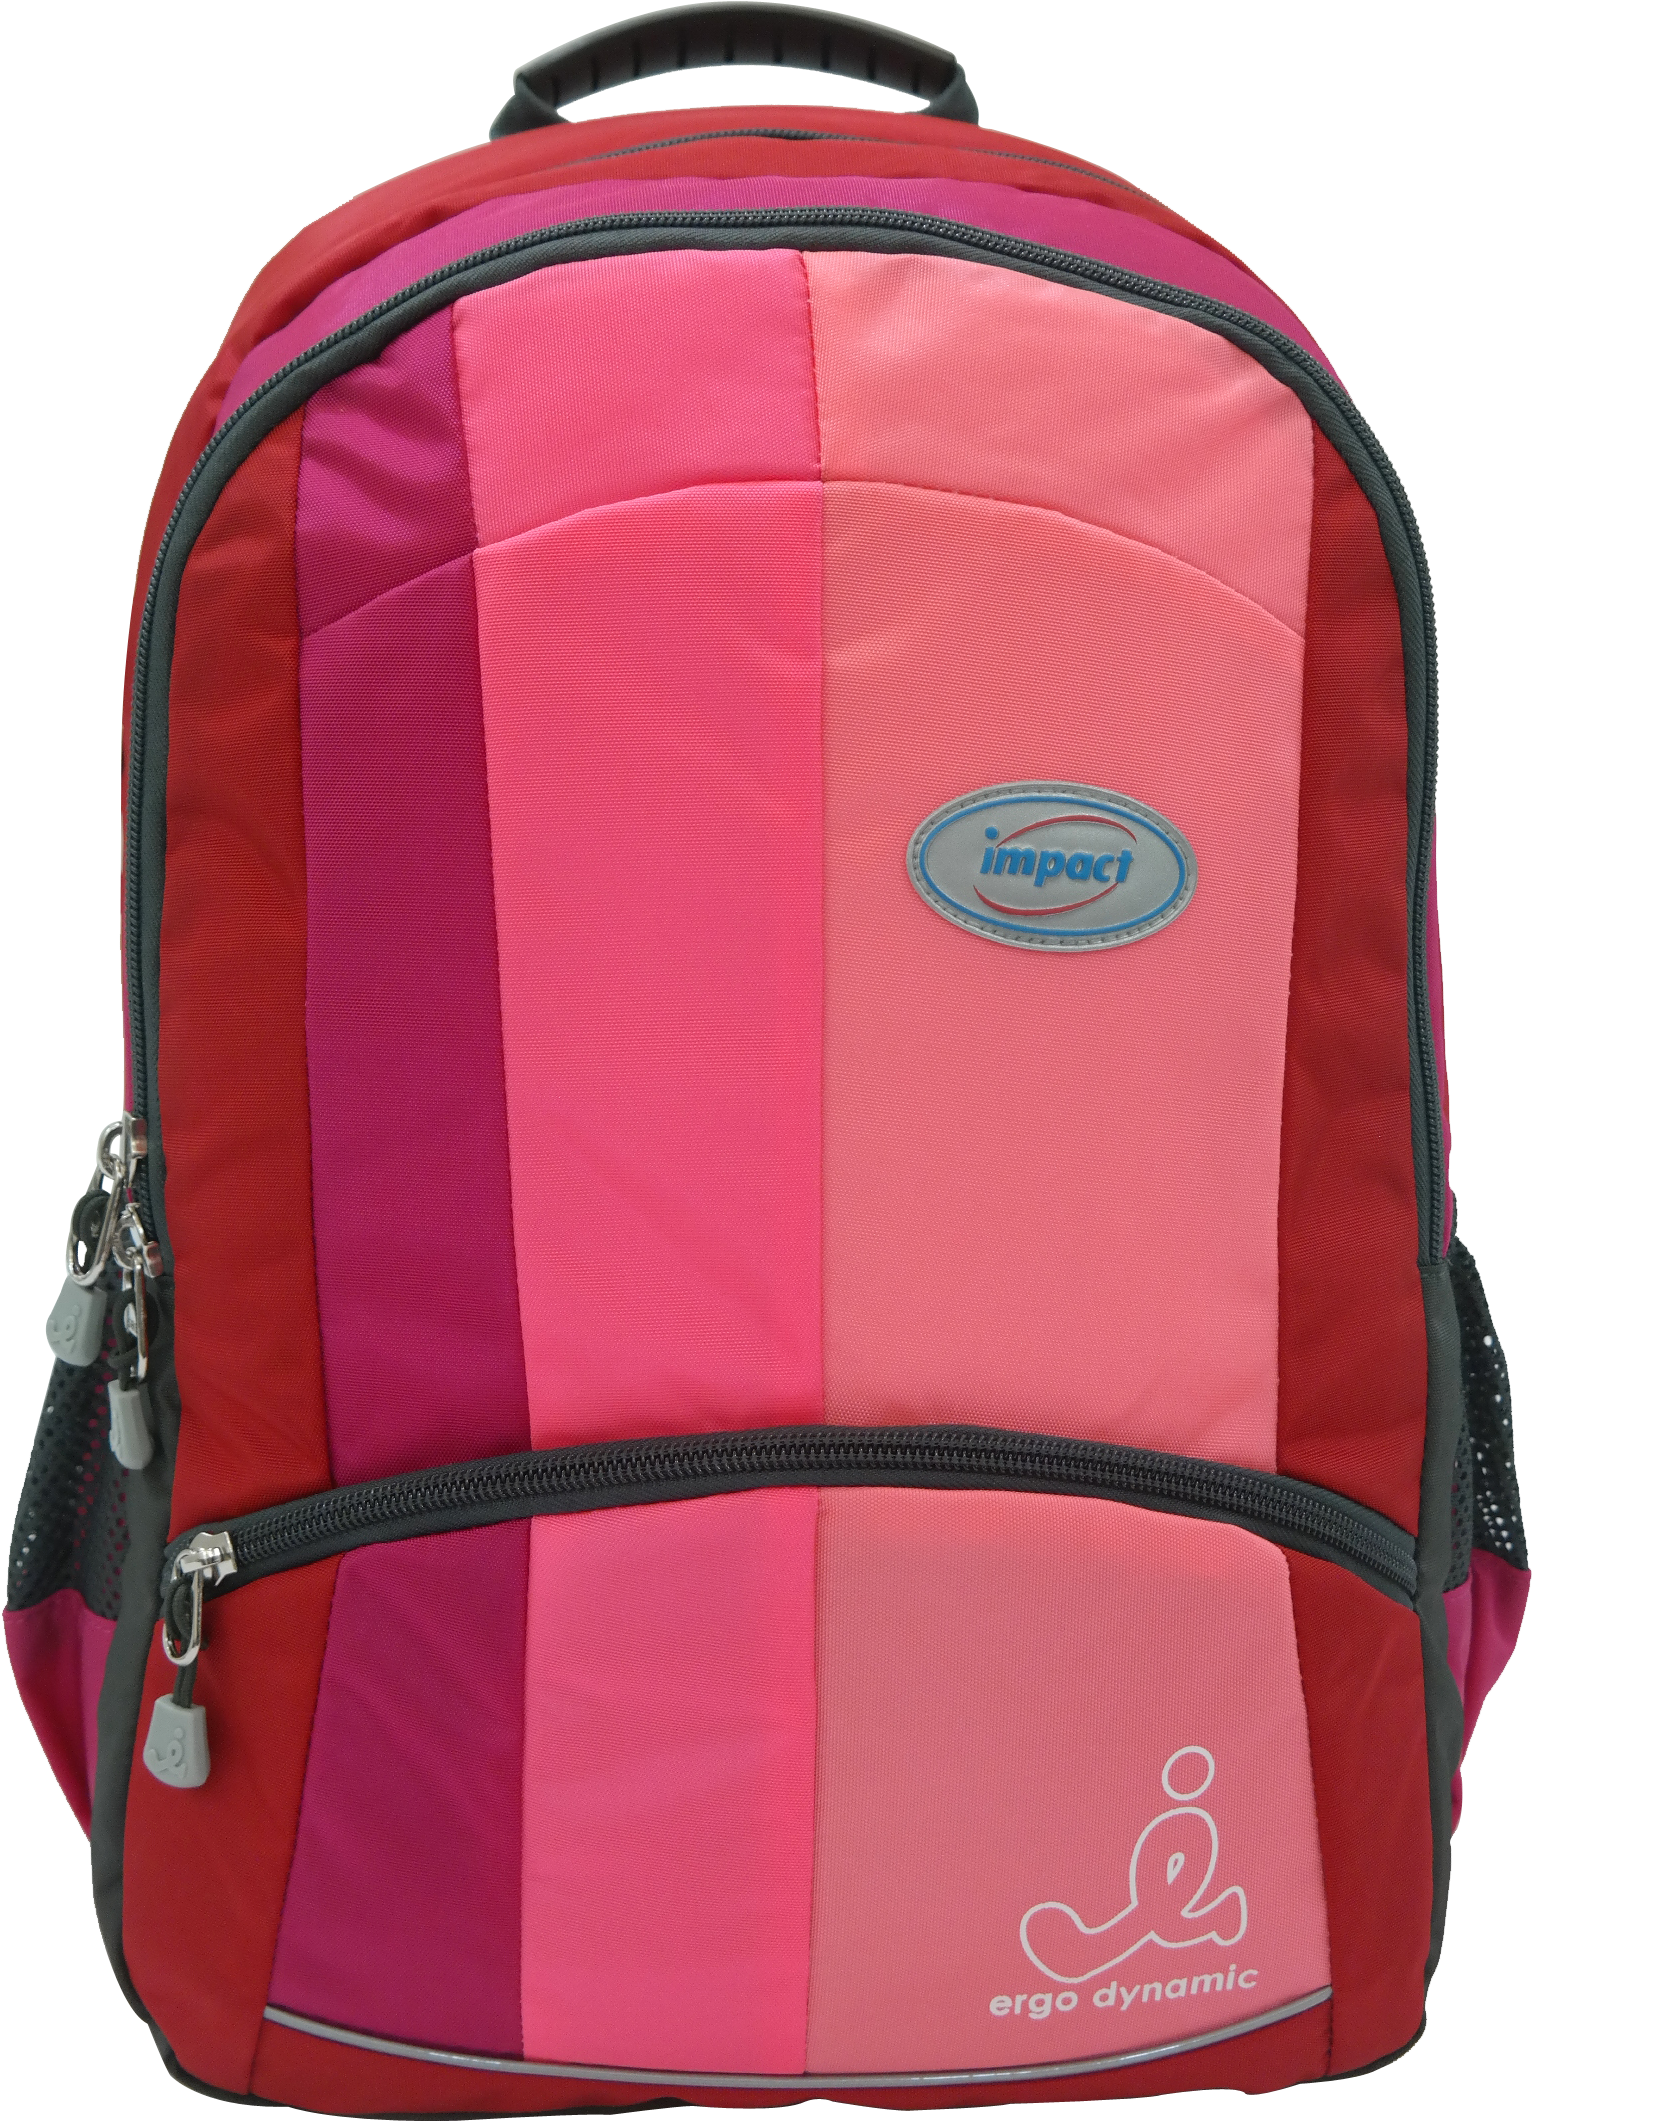 Impact Ergonomic Backpack Ipeg-130 Pink - Impact School Bags Singapore (1835x2535)